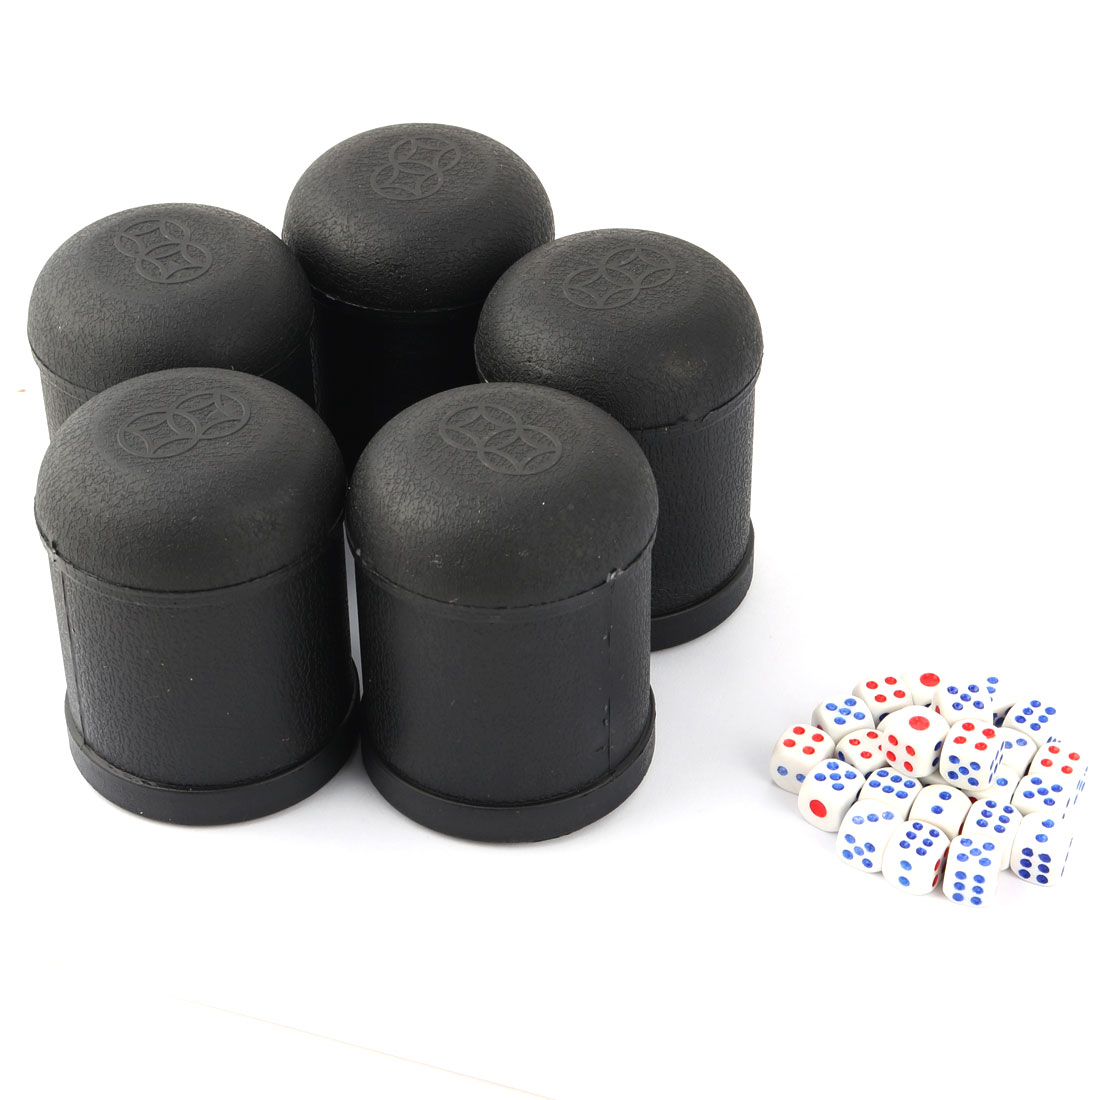 KTV Pub Bar Party Casual Toy Plastic Round Shaker Dice Cup Black 5 PCS